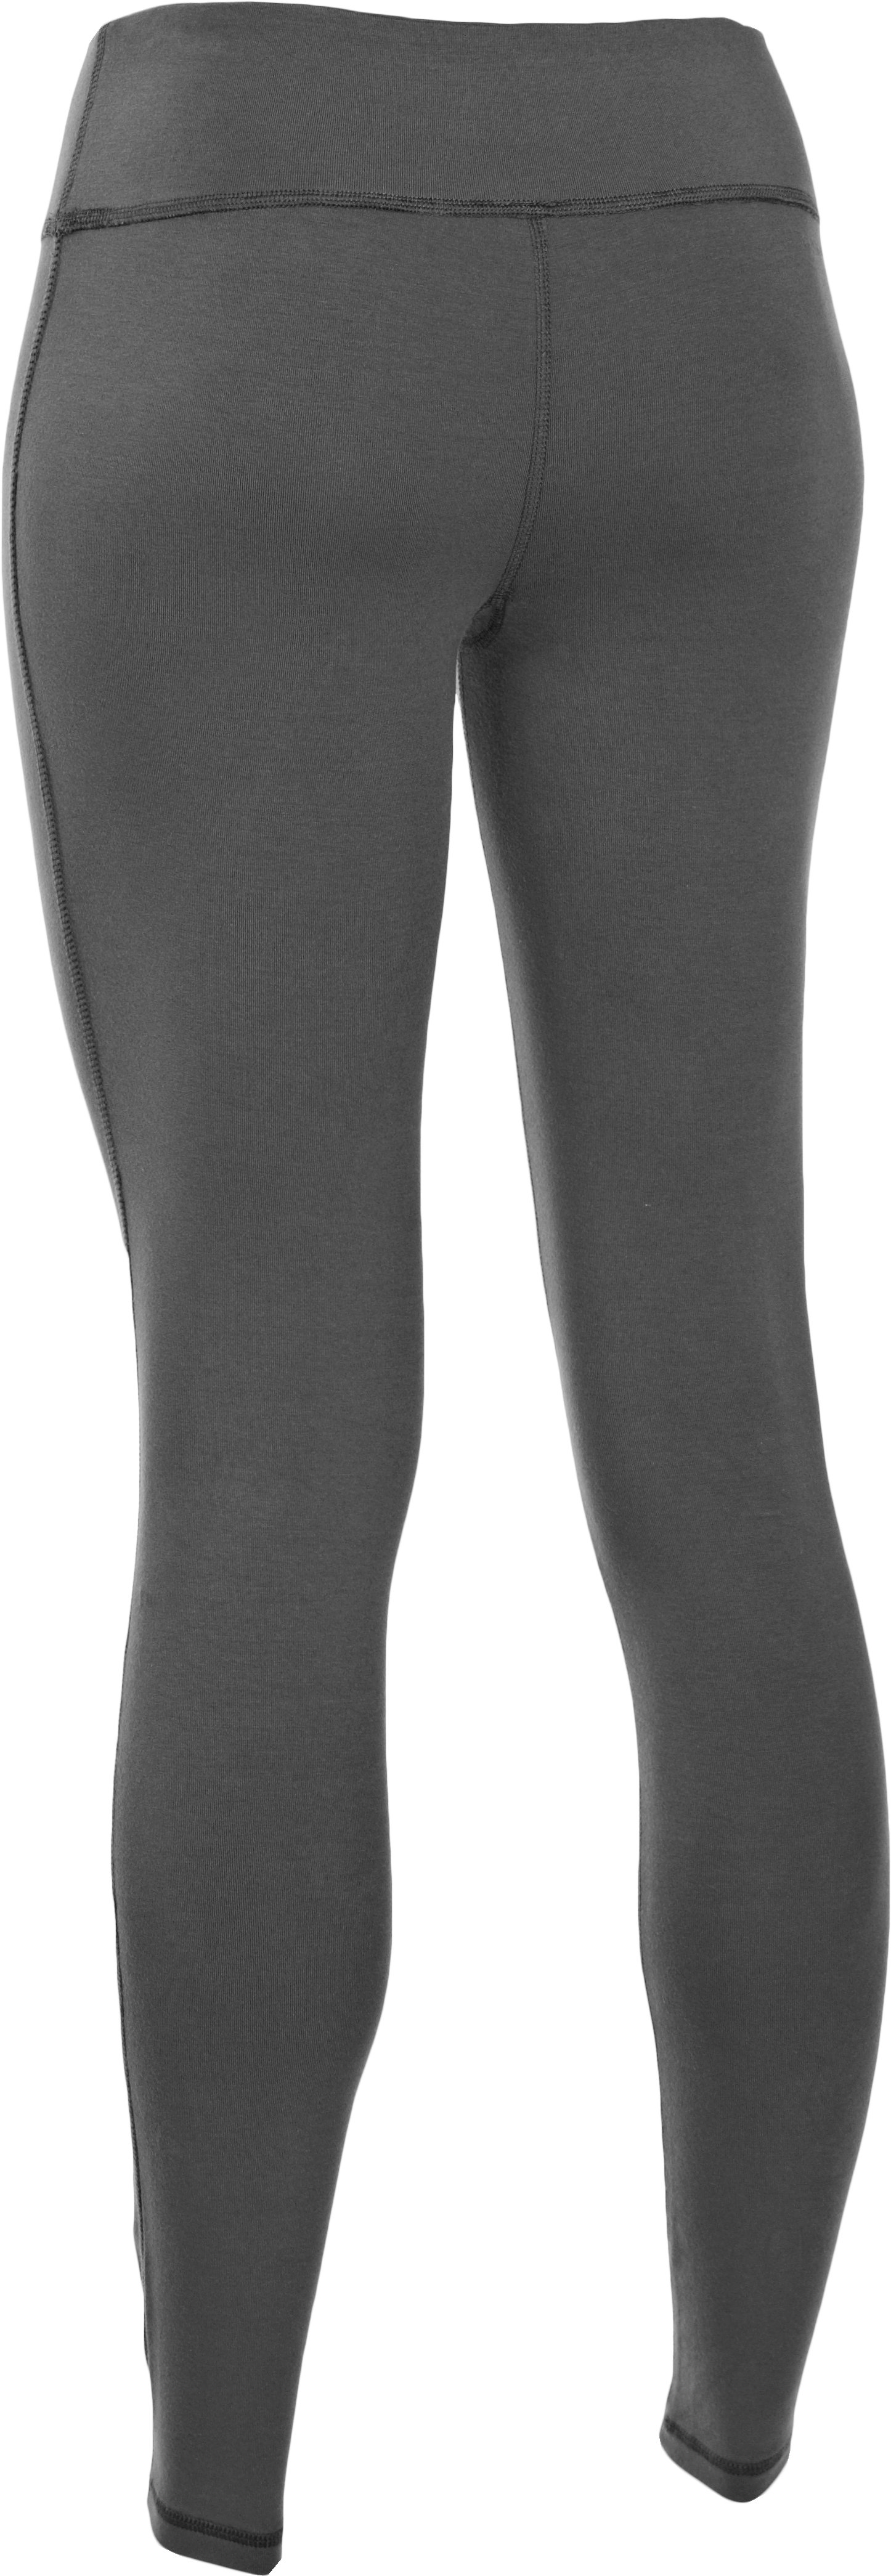 "Women's Charged Cotton® Ultimate 28"" Legging, Lead"